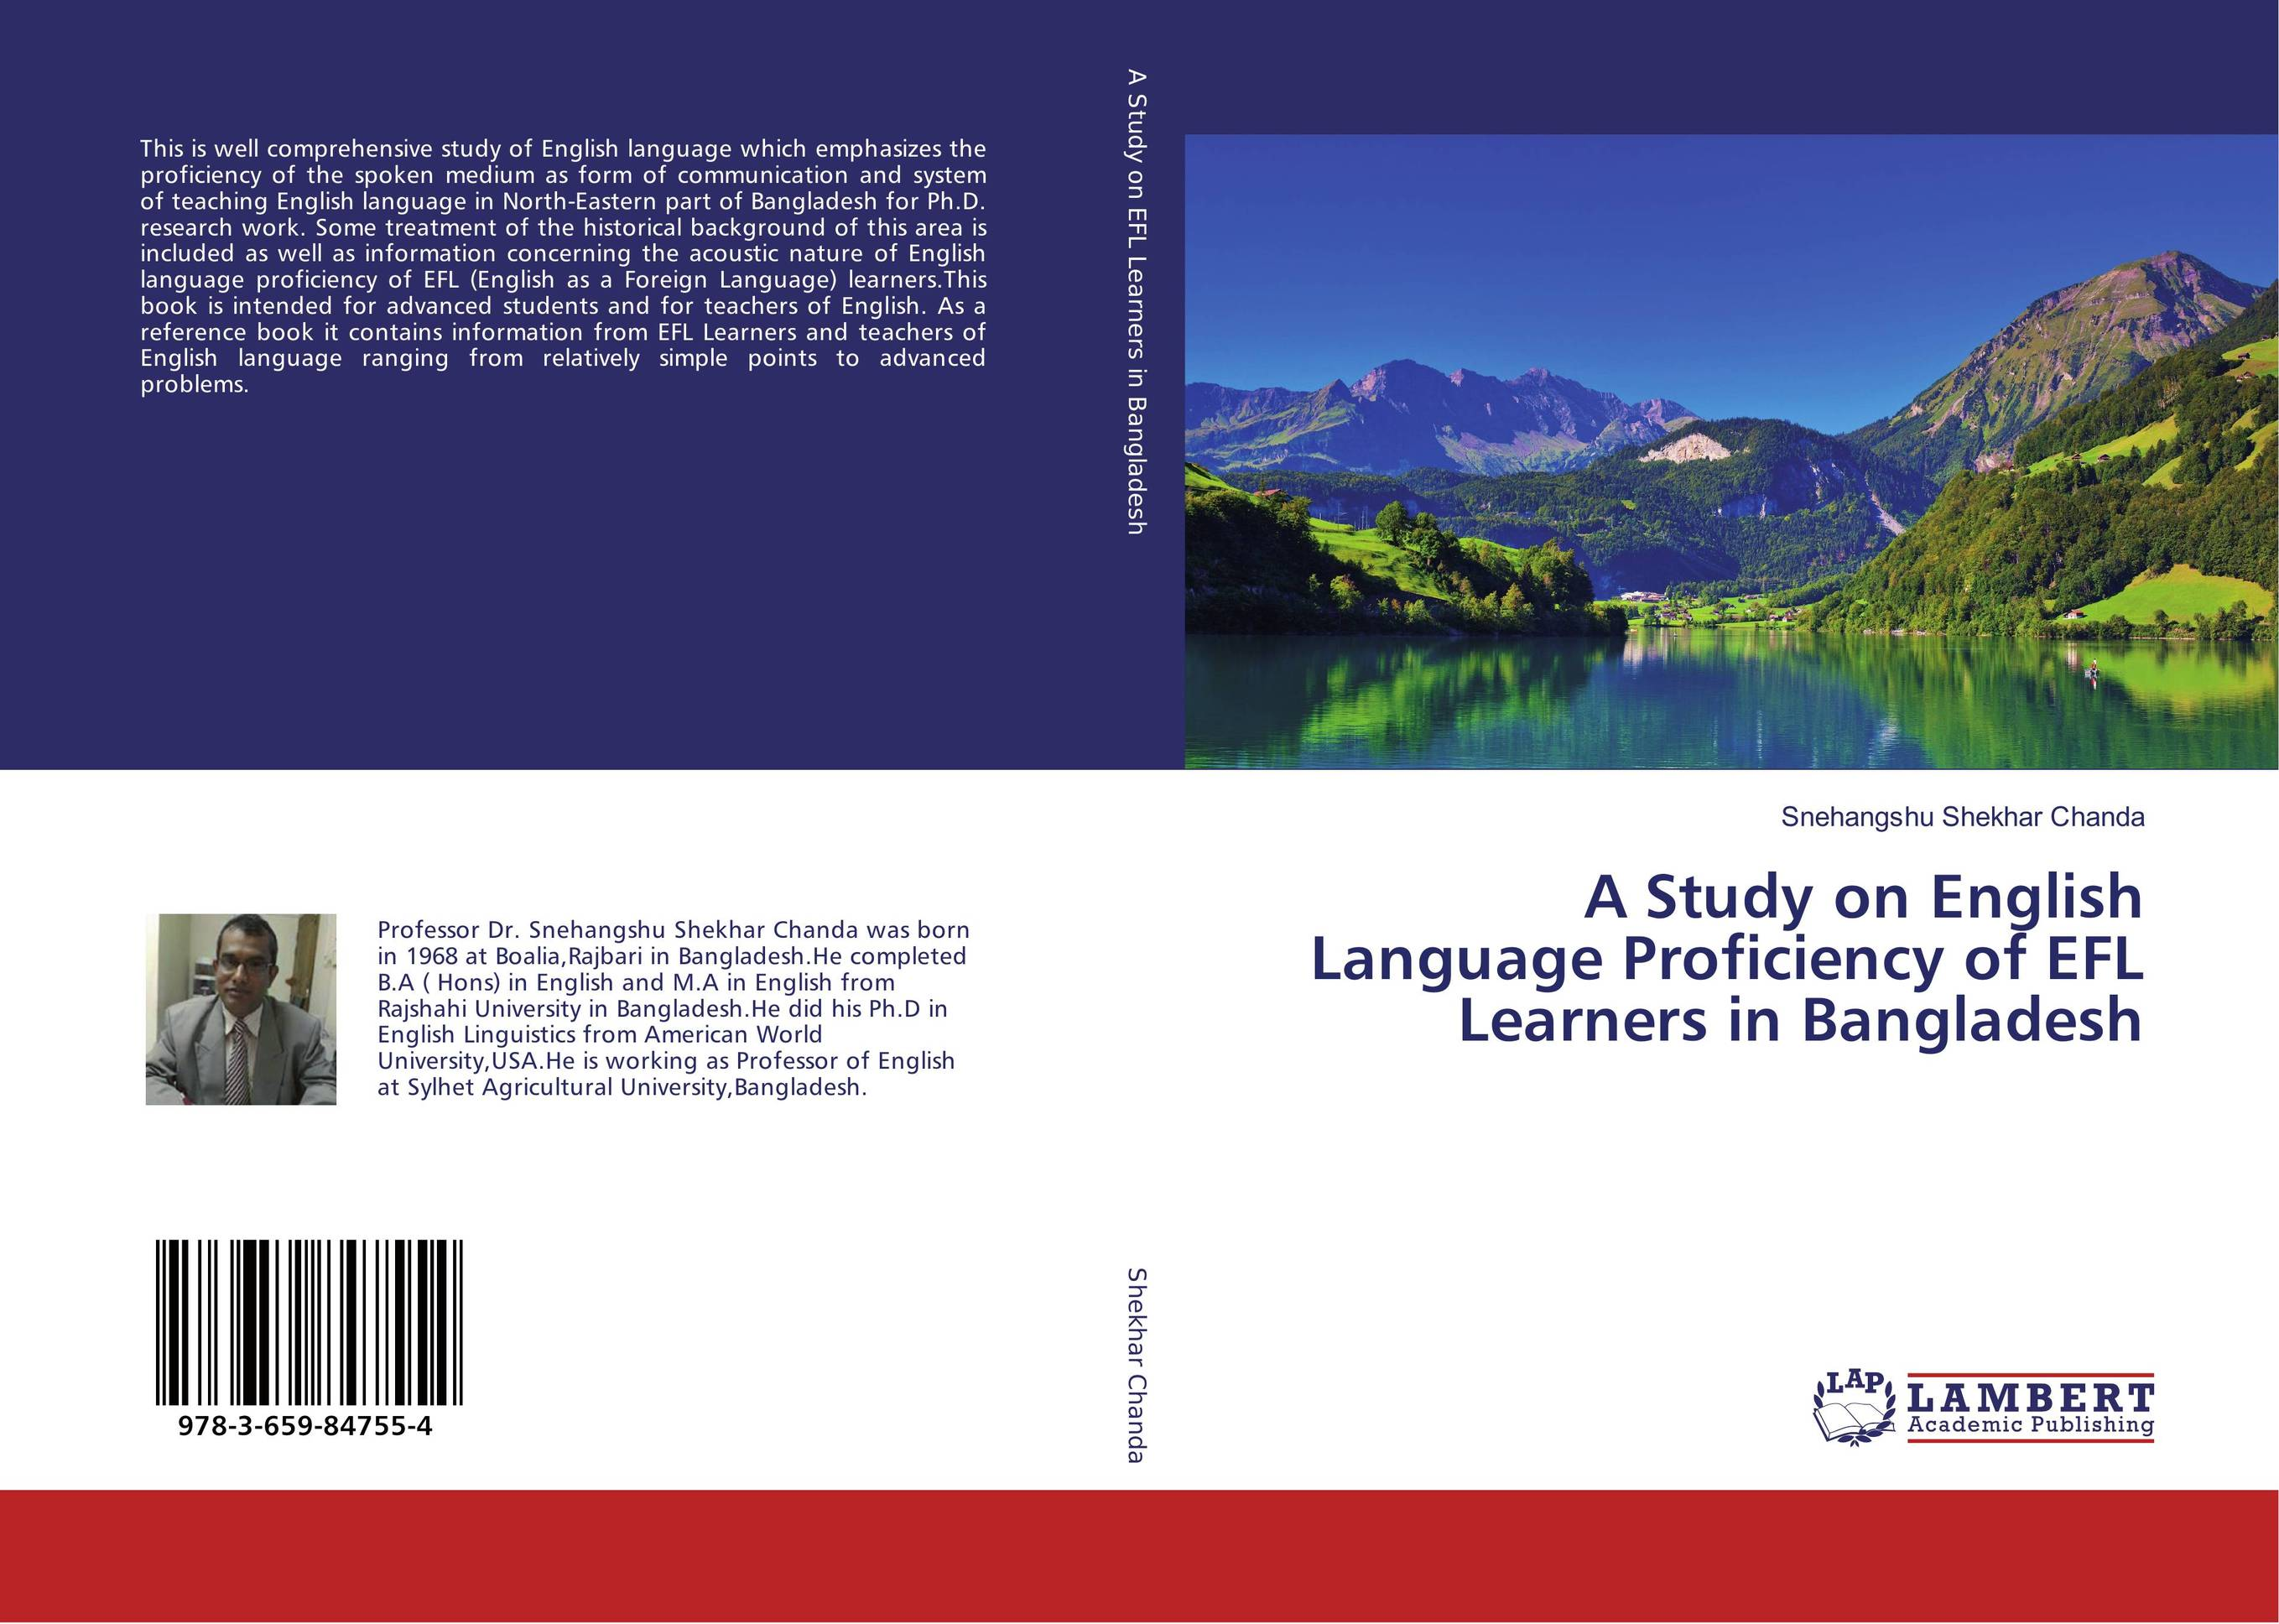 A Study on English Language Proficiency of EFL Learners in Bangladesh цена